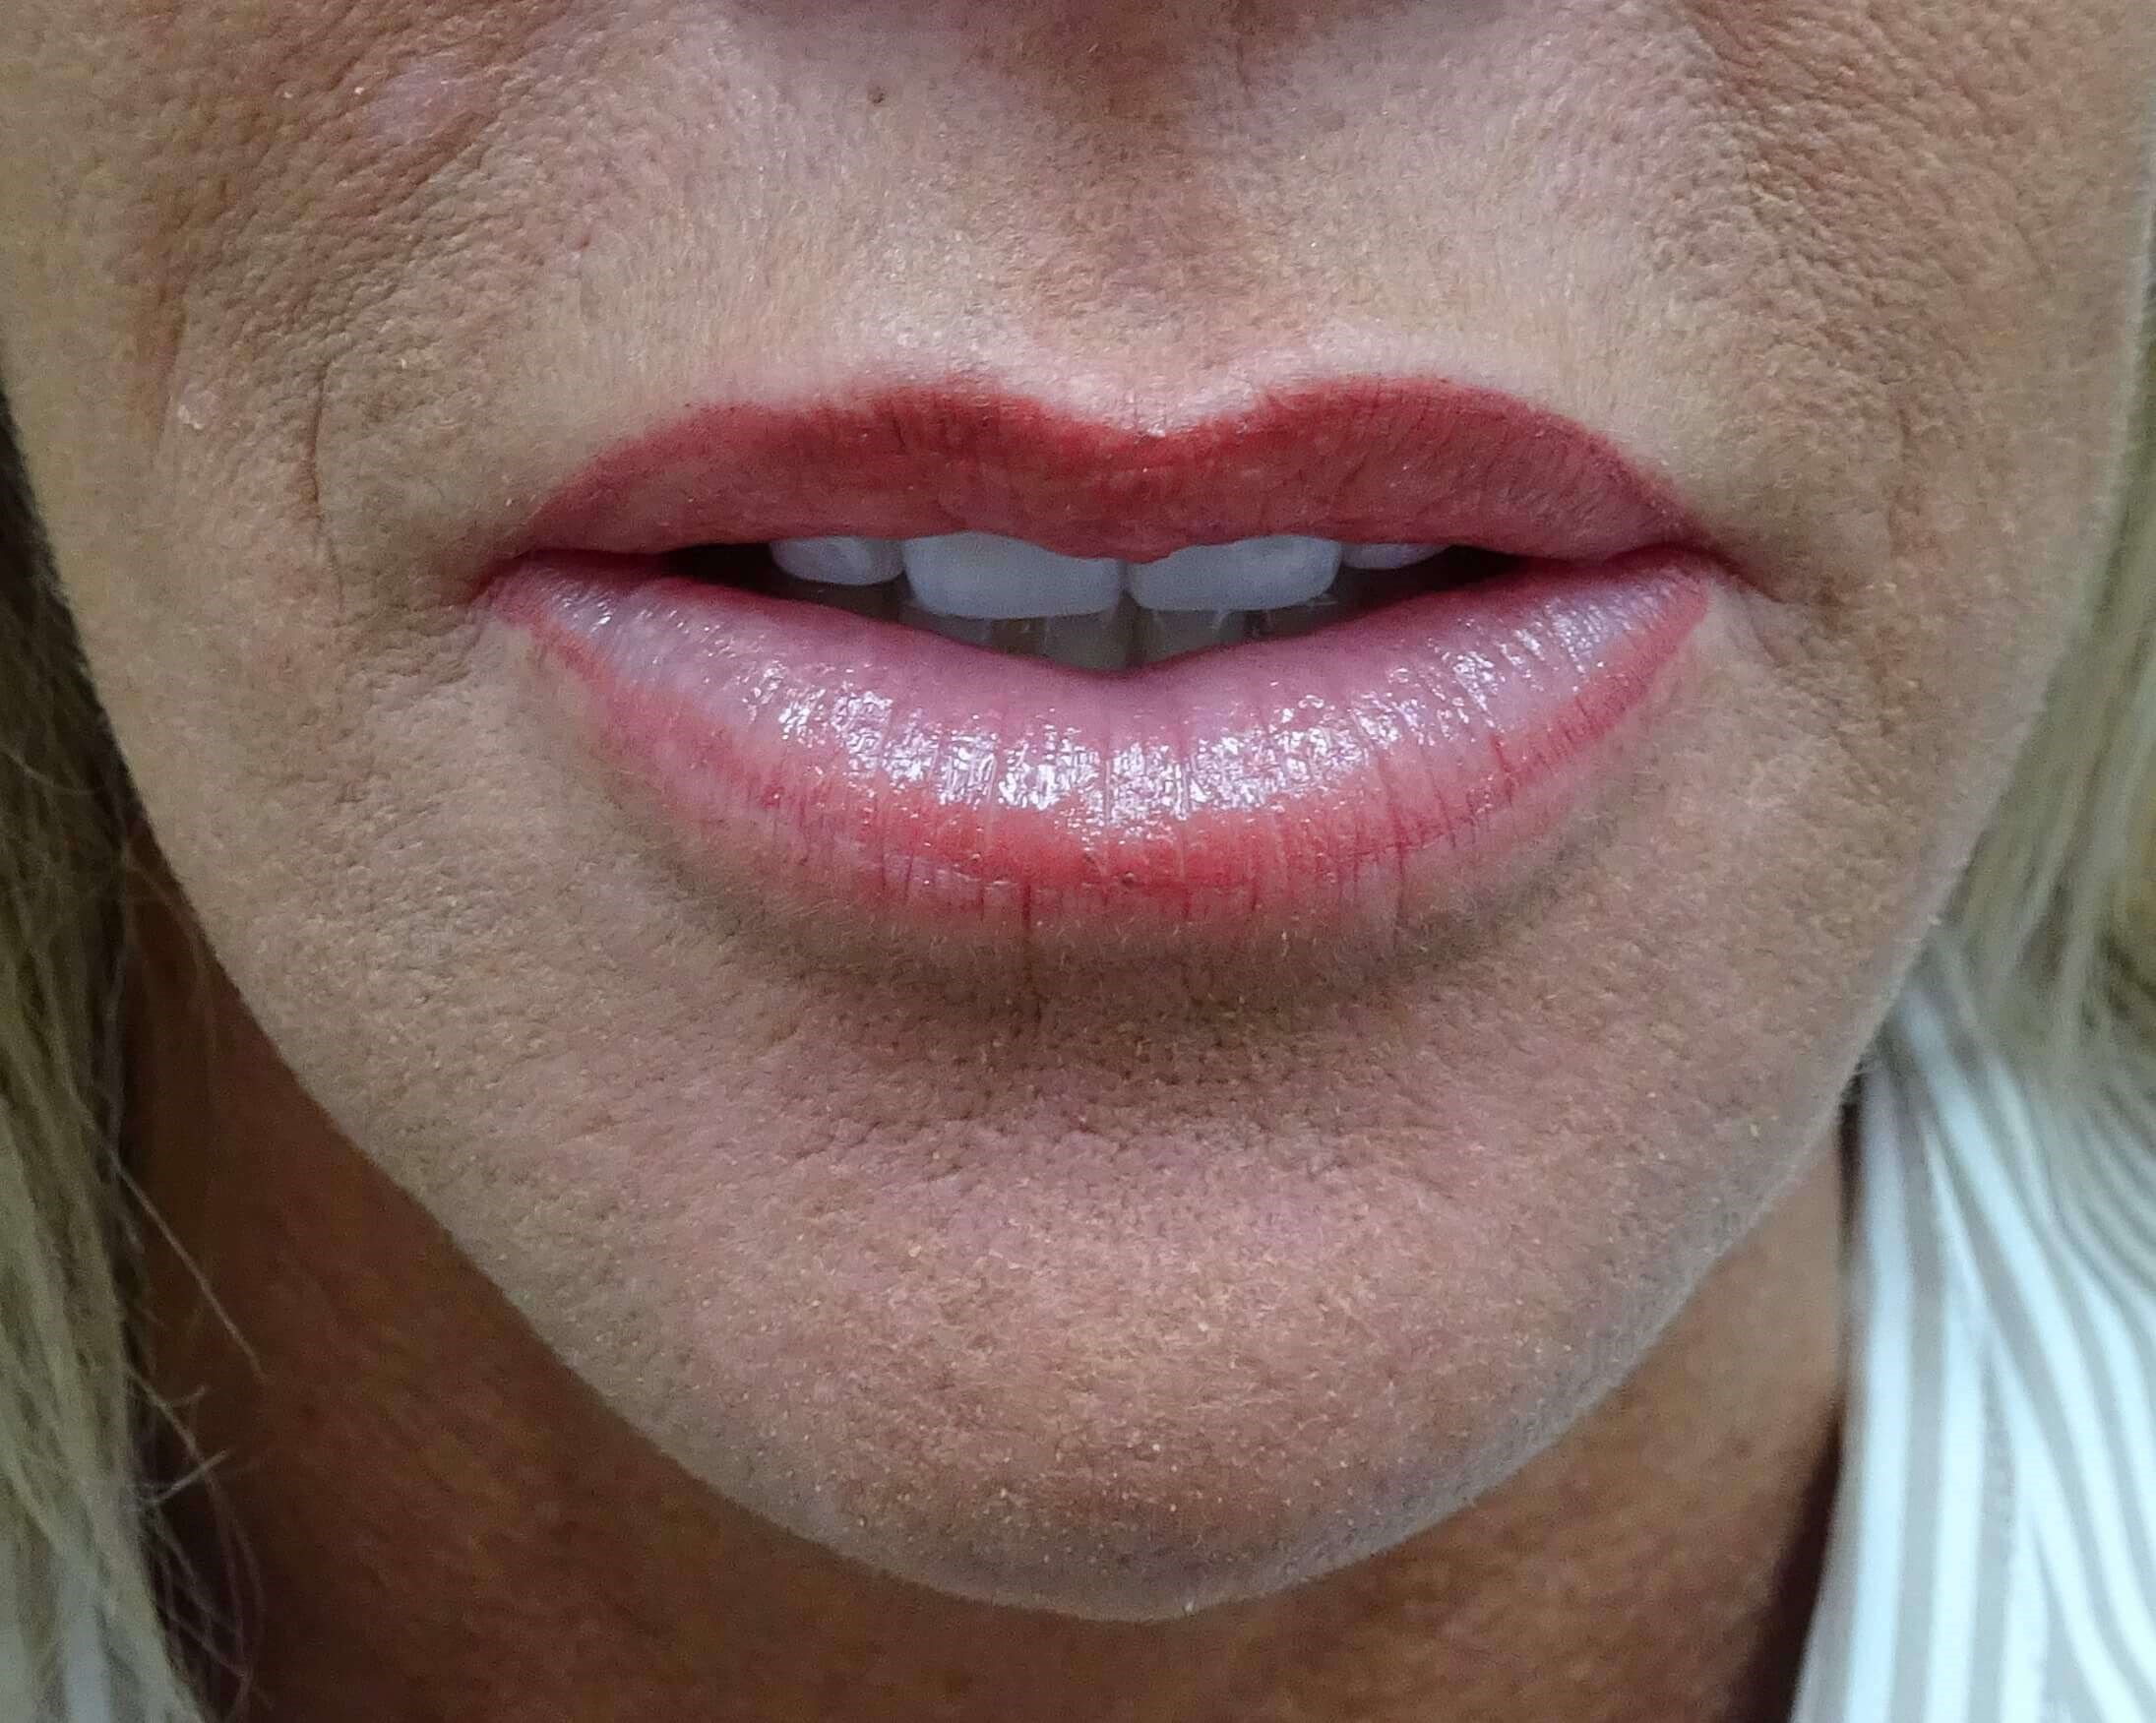 Juvederm enhances thin lips Lips Enhanced After Juvederm